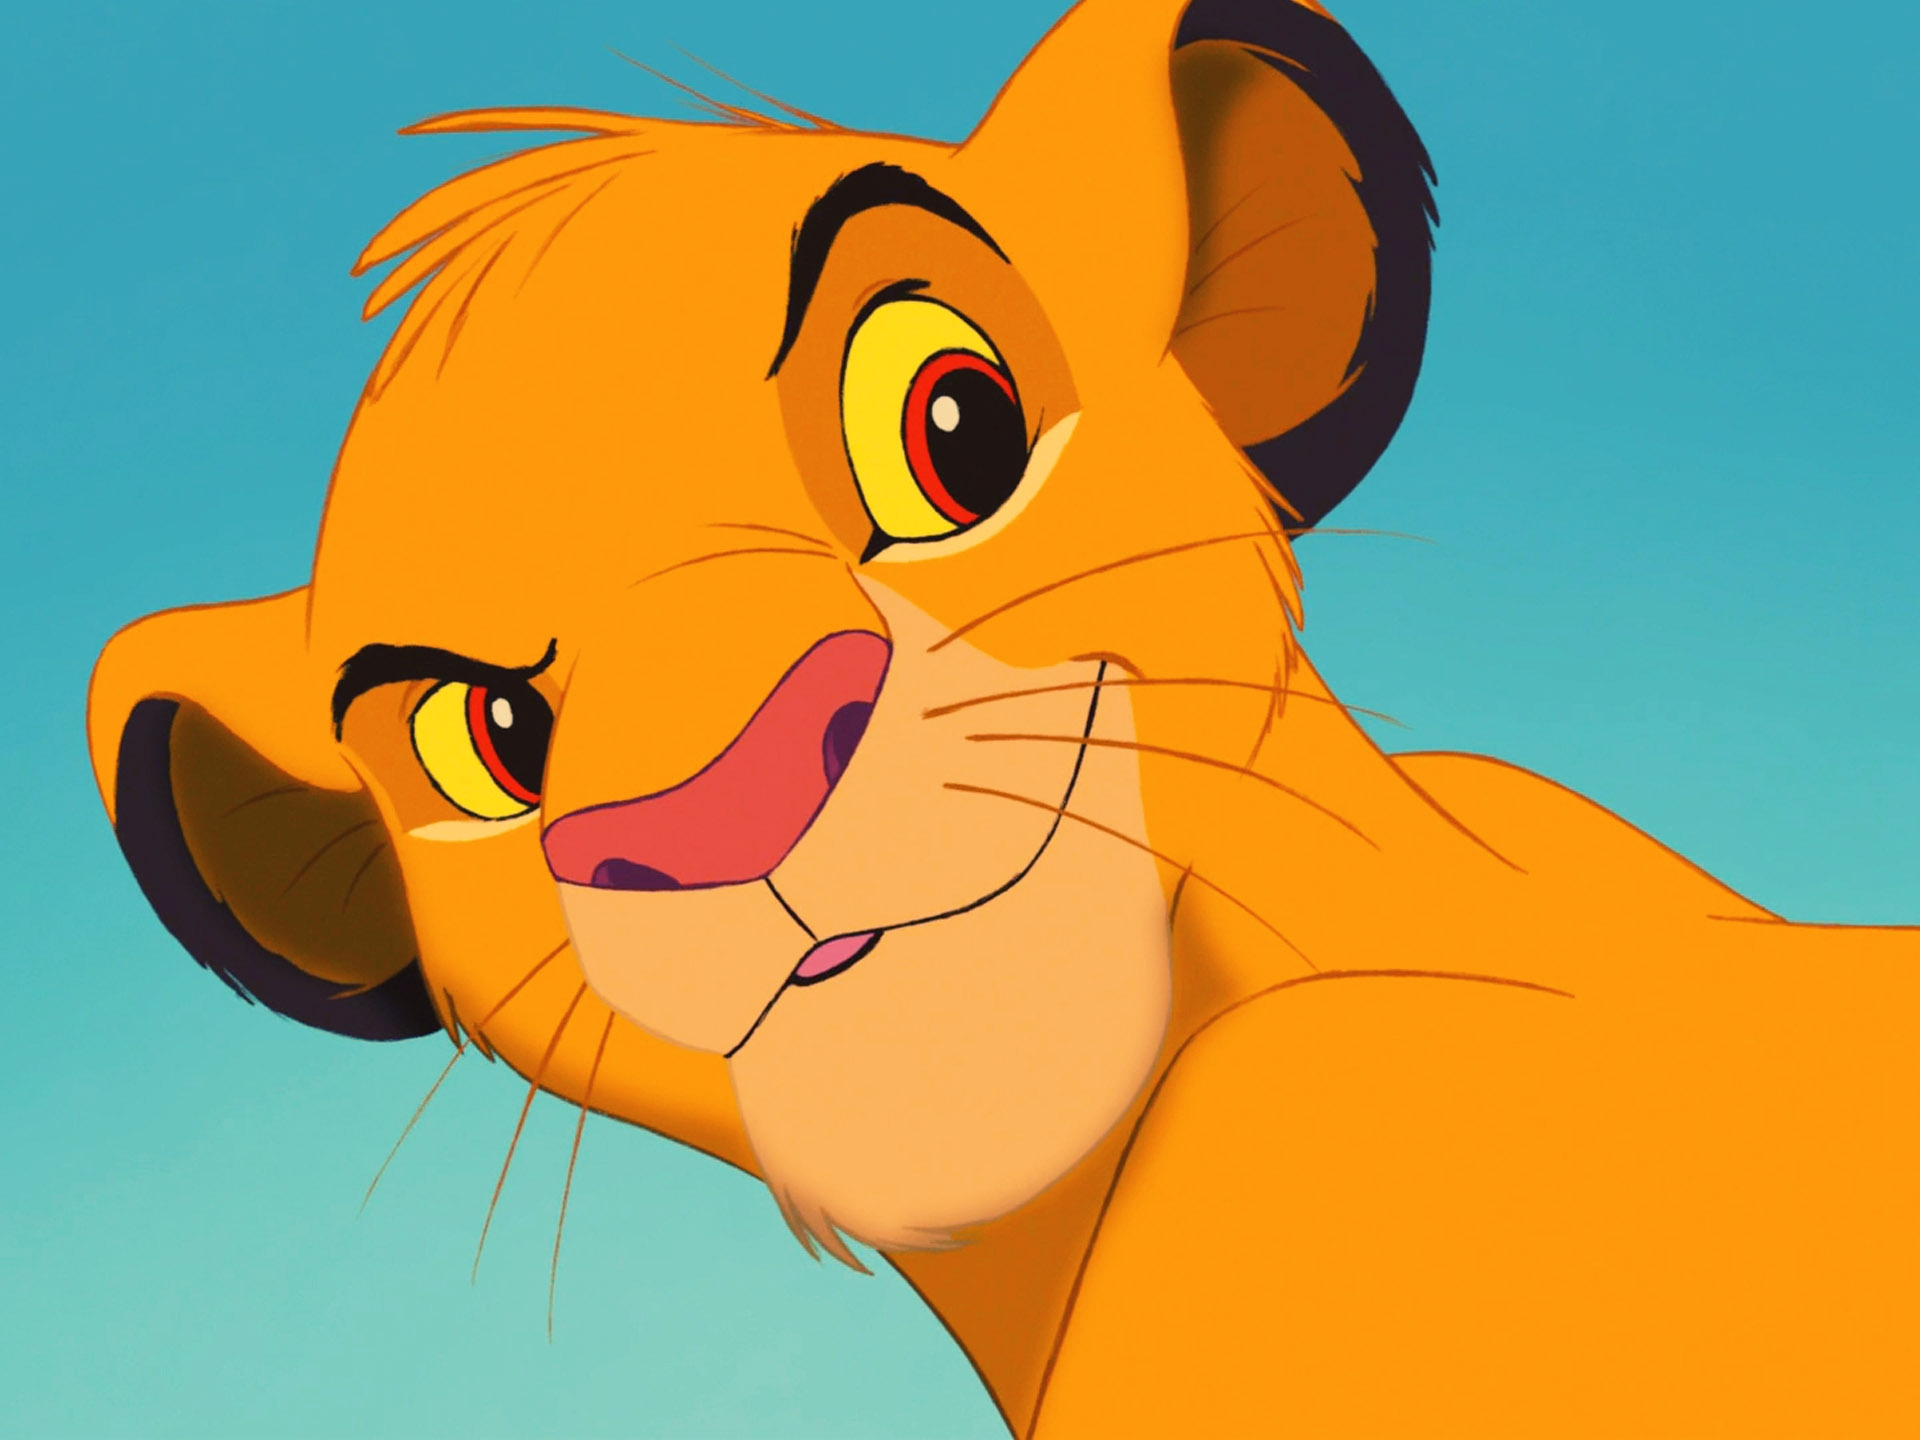 hight resolution of image simba the lion king wallpaper for 1920x1440